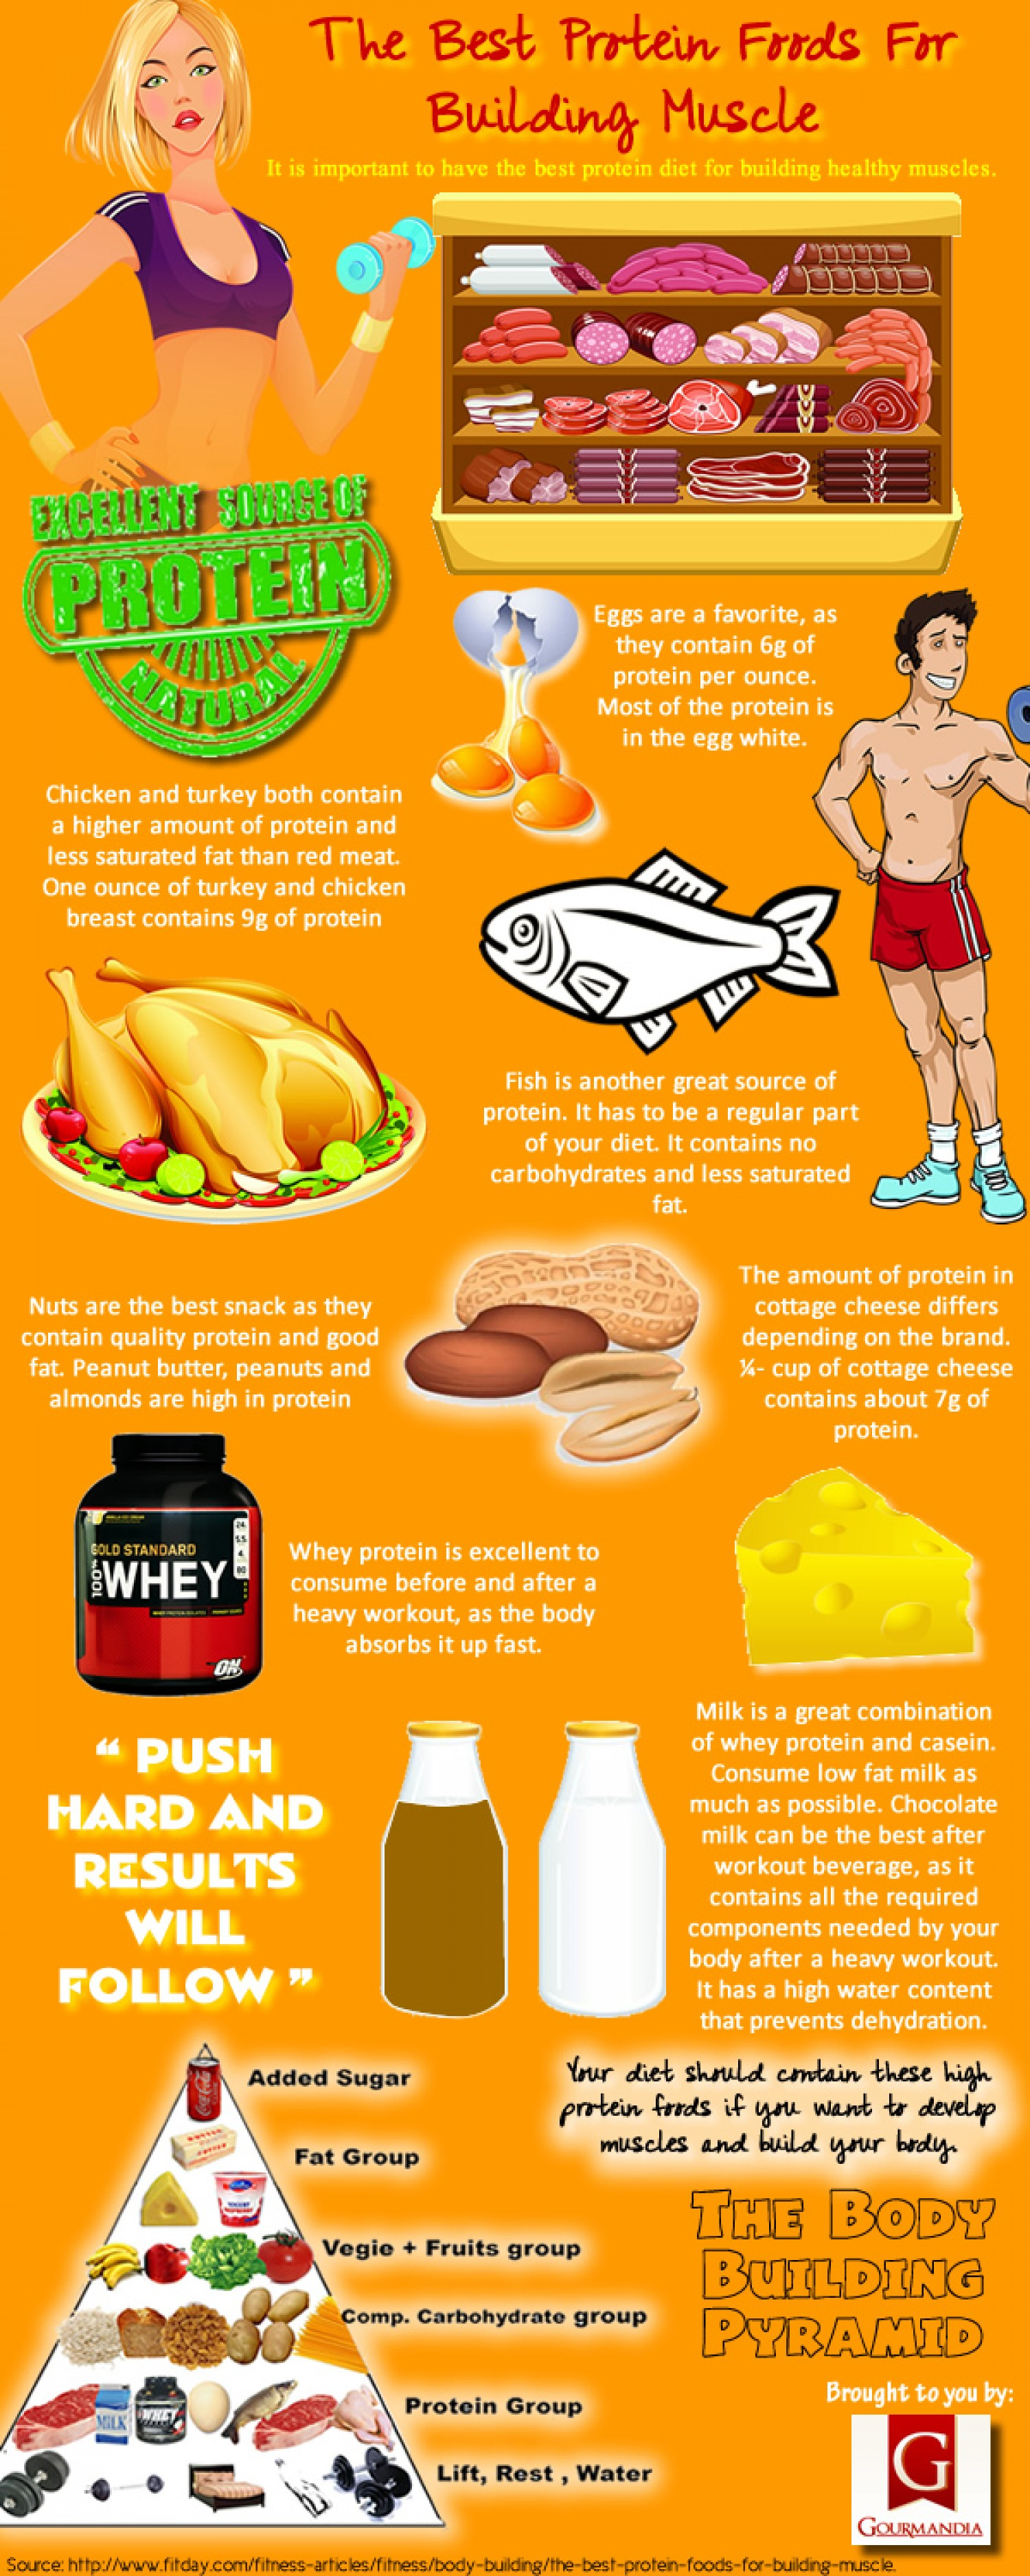 protein-foods-for-building-muscle_531598dc7af6e_w1500